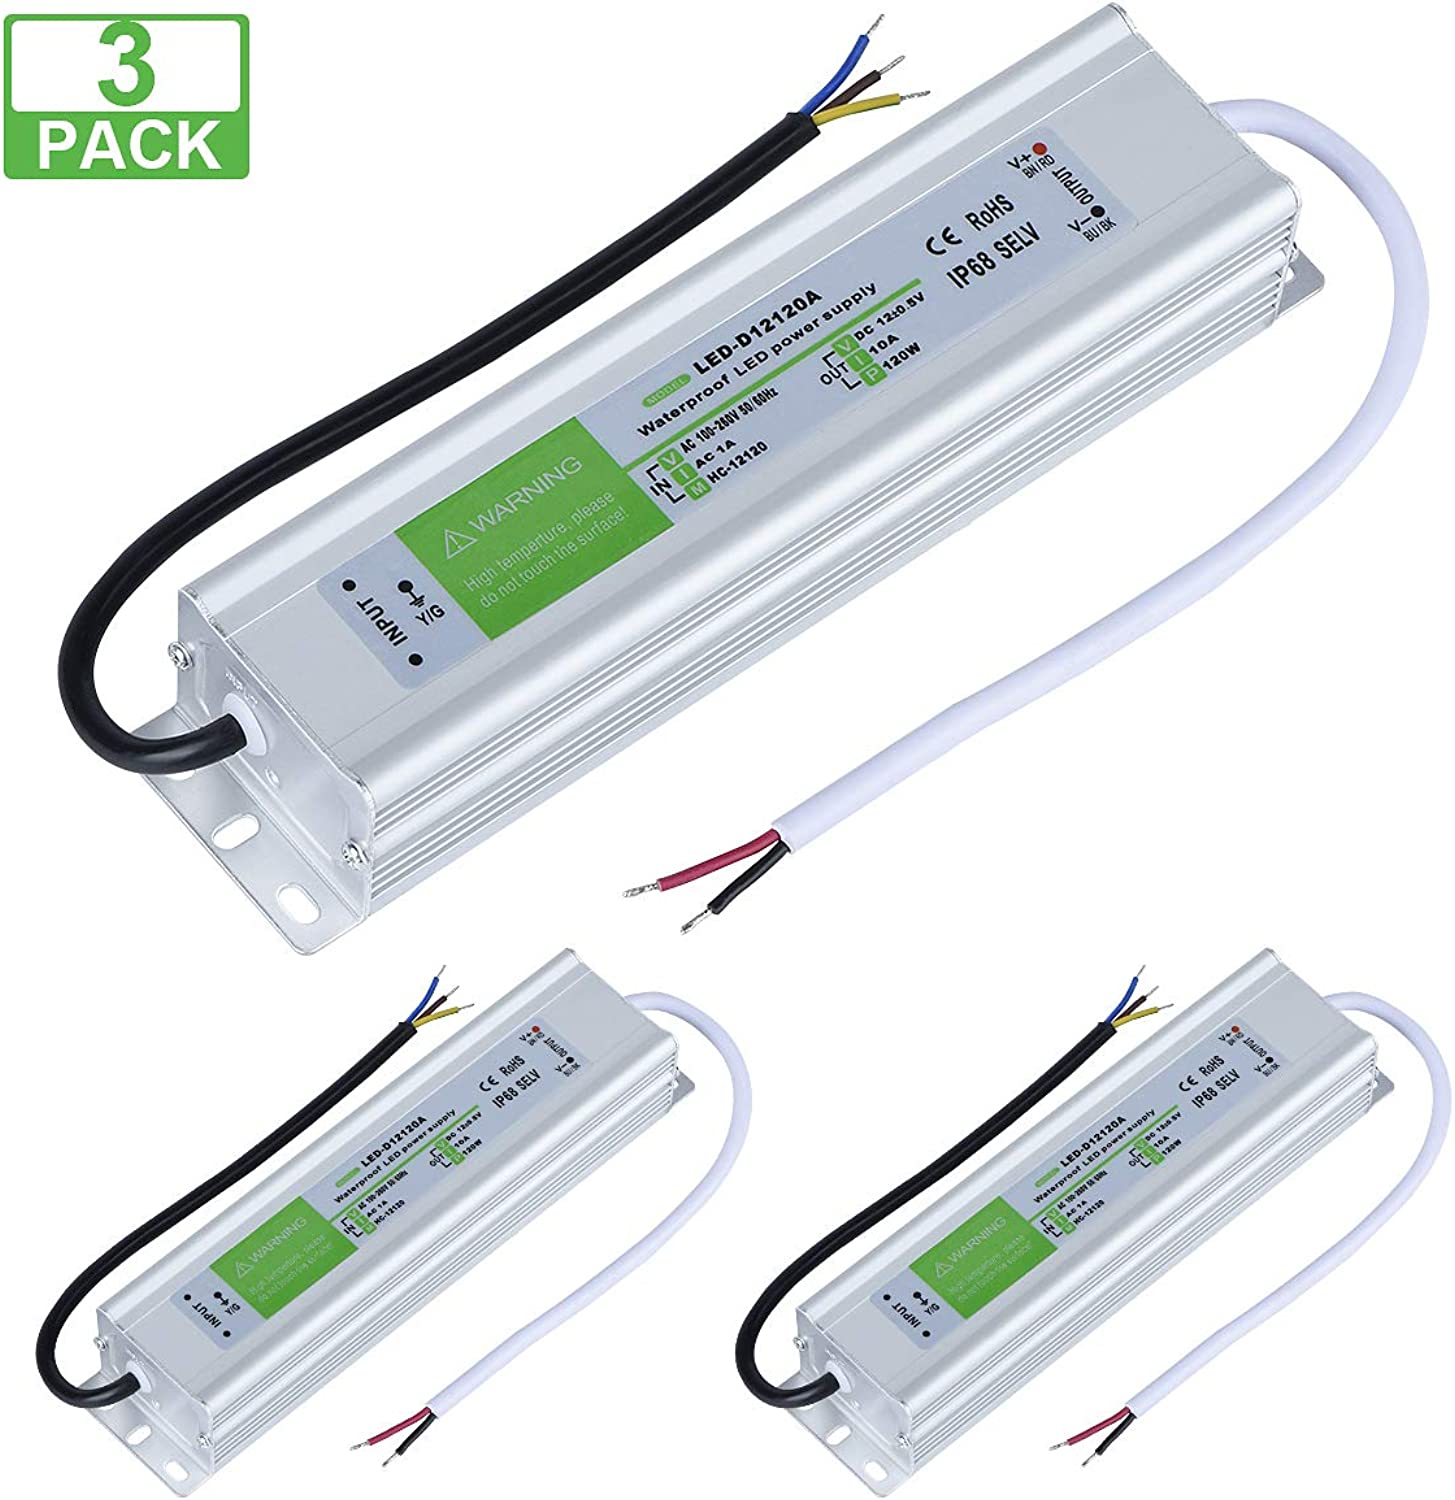 3 Pack LED Driver 120 Watts Waterproof IP68 Power Supply Transformer Adapter 100V-260V AC to 12V DC Low Voltage Output for LED Light, Computer Project, Outdoor Light and Any 12V DC led Lights